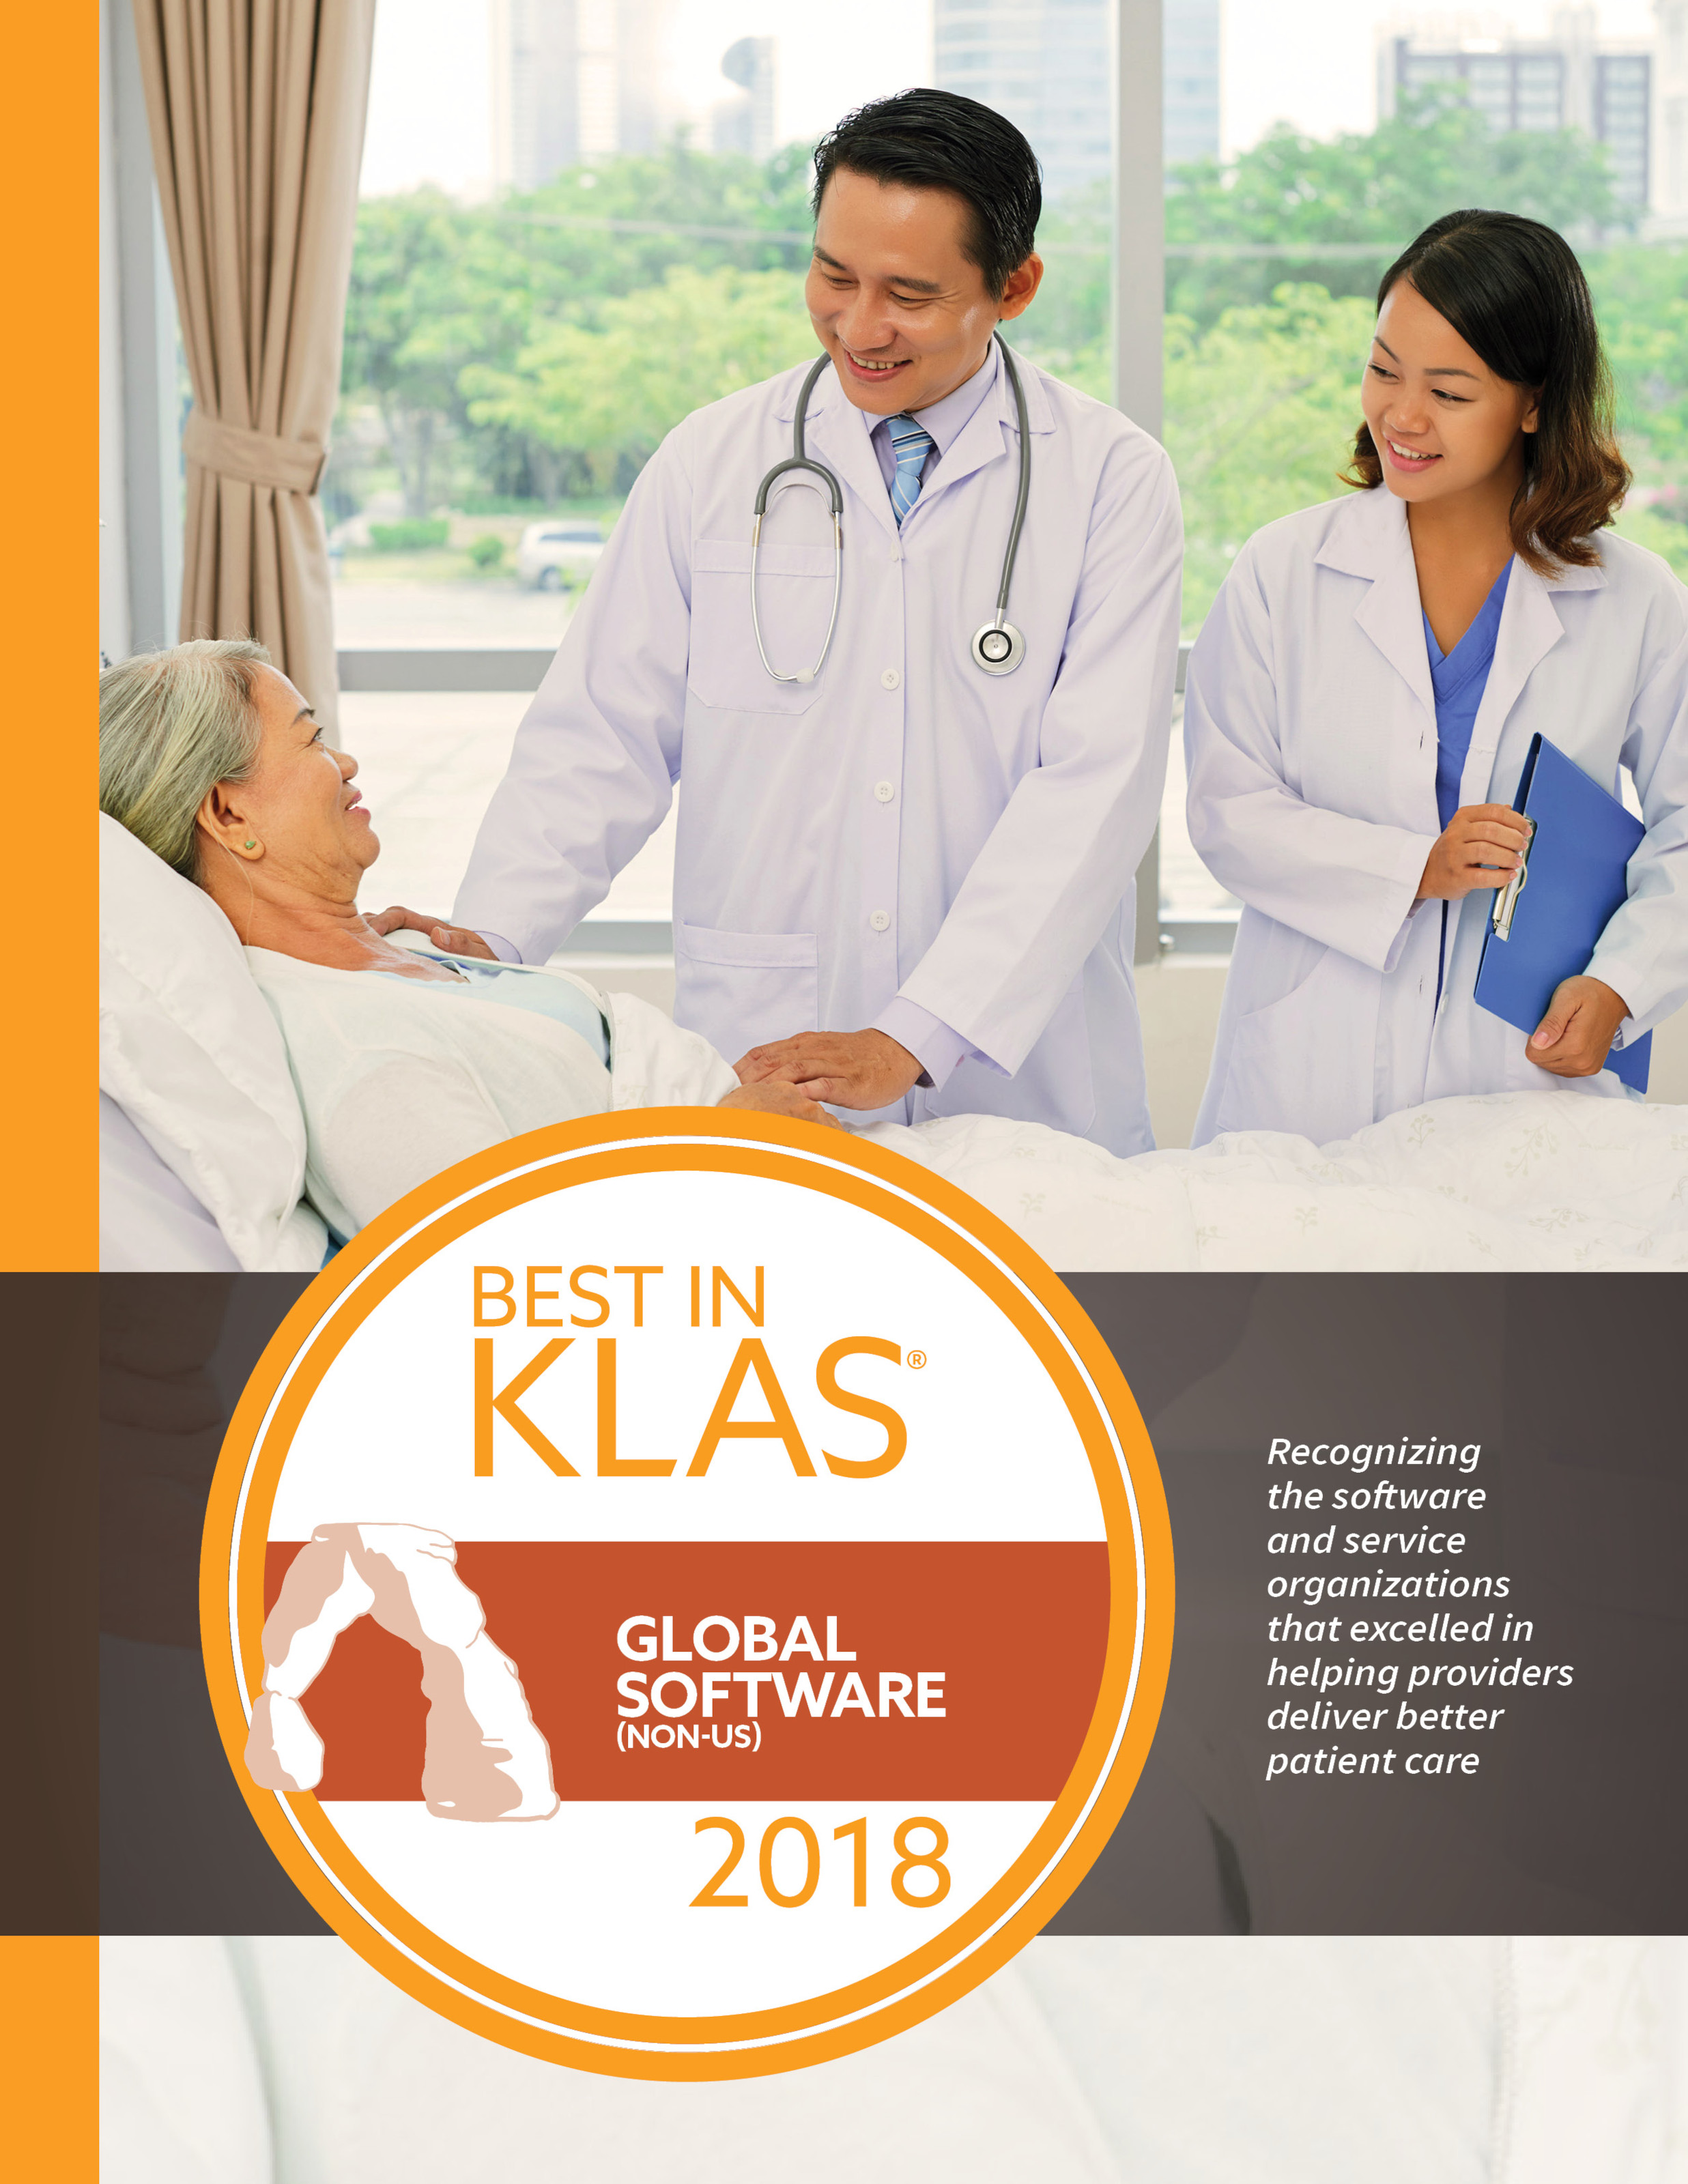 2018 Global Best in KLAS